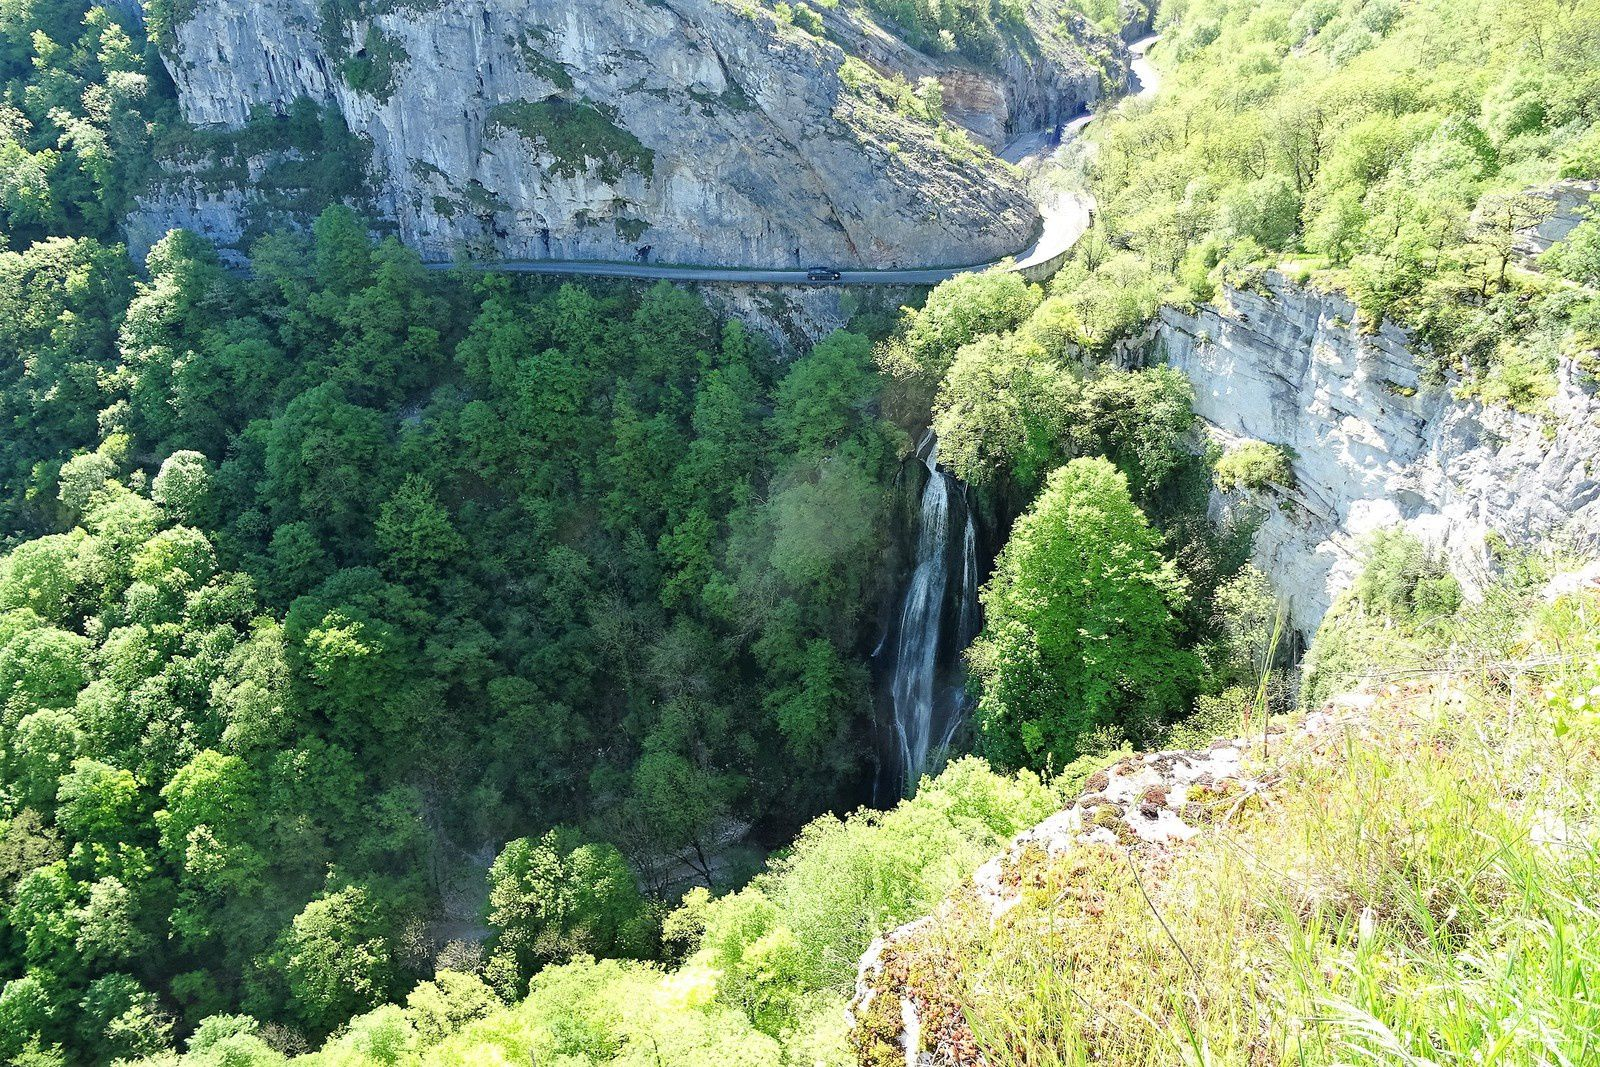 Point de vue sur la cascade.